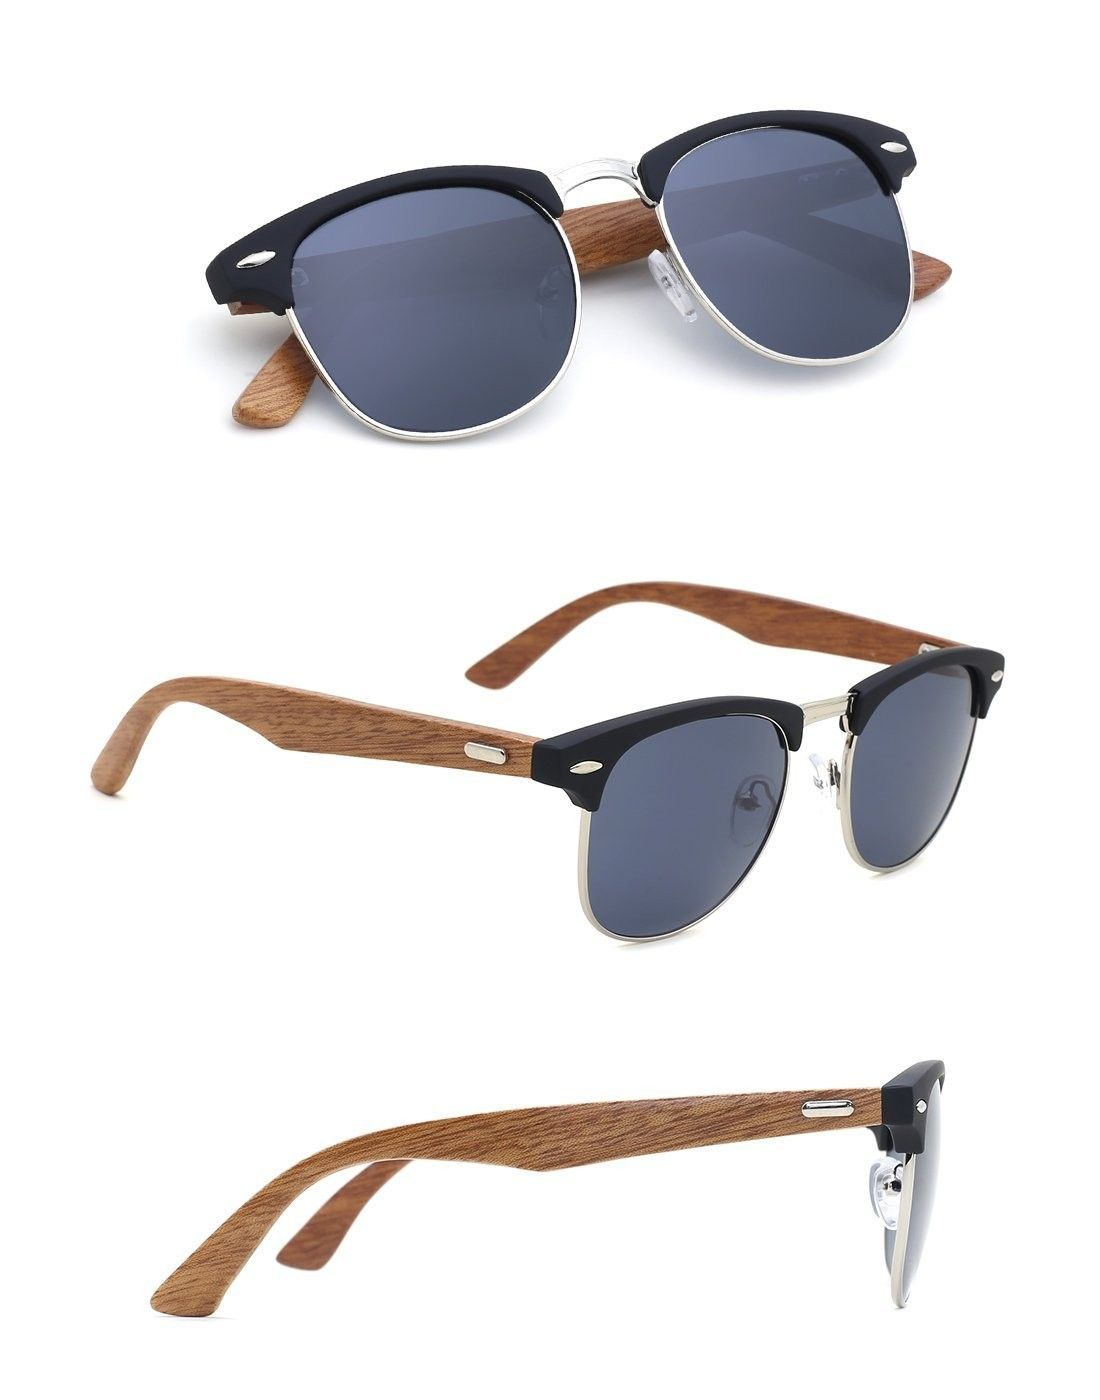 aba9772ae12 Mens Bamboo Wooden Semi-Rimless Horn Rimmed Wayfarer Clubmaster Sunglasses  - H - CC1253DL74D -